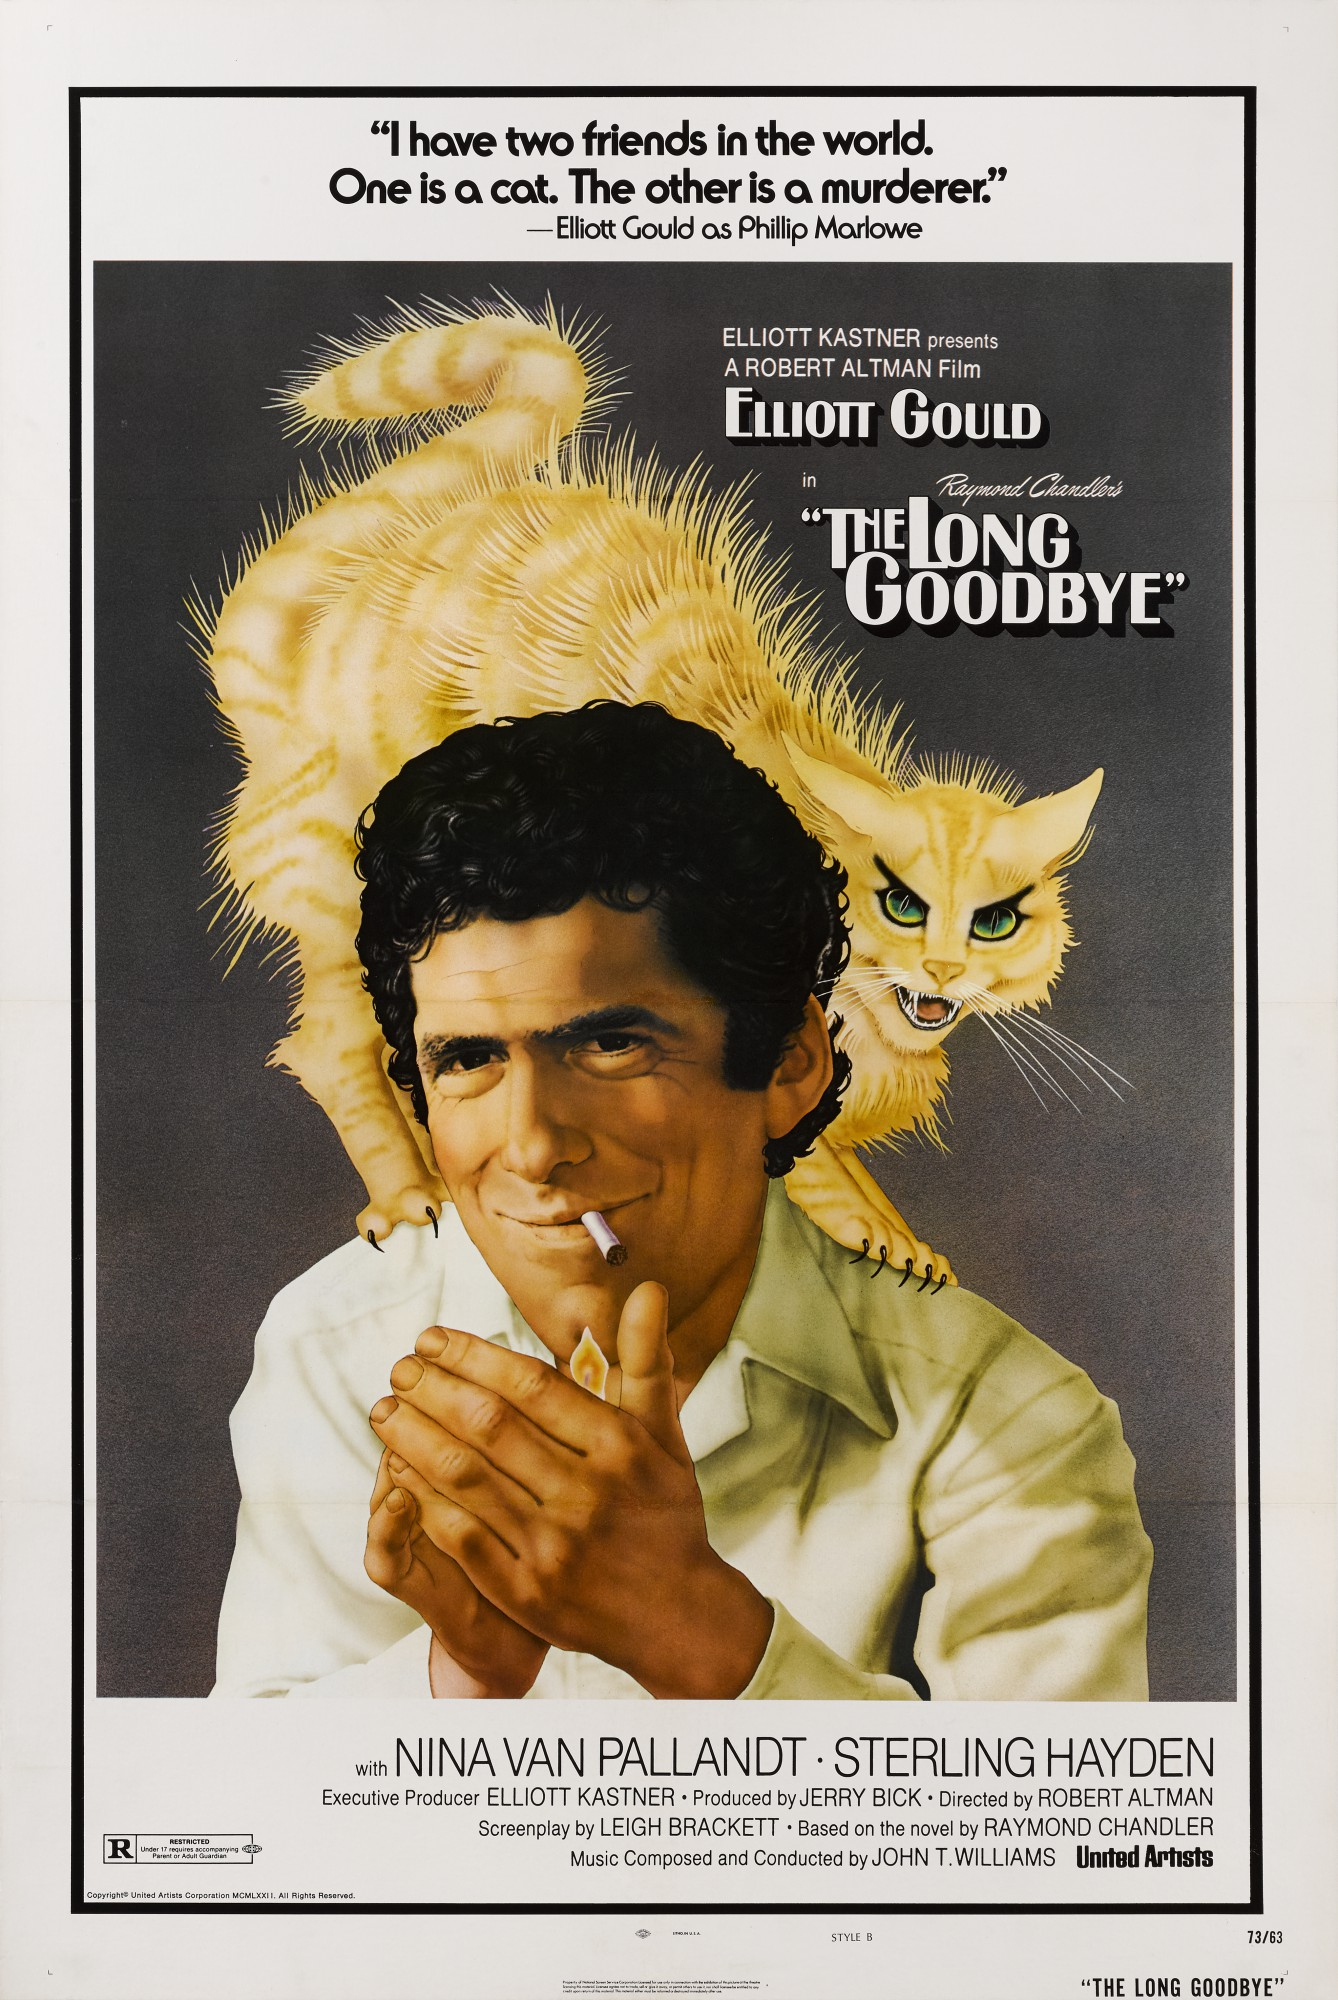 THE LONG GOODBYE (1973) POSTER, US